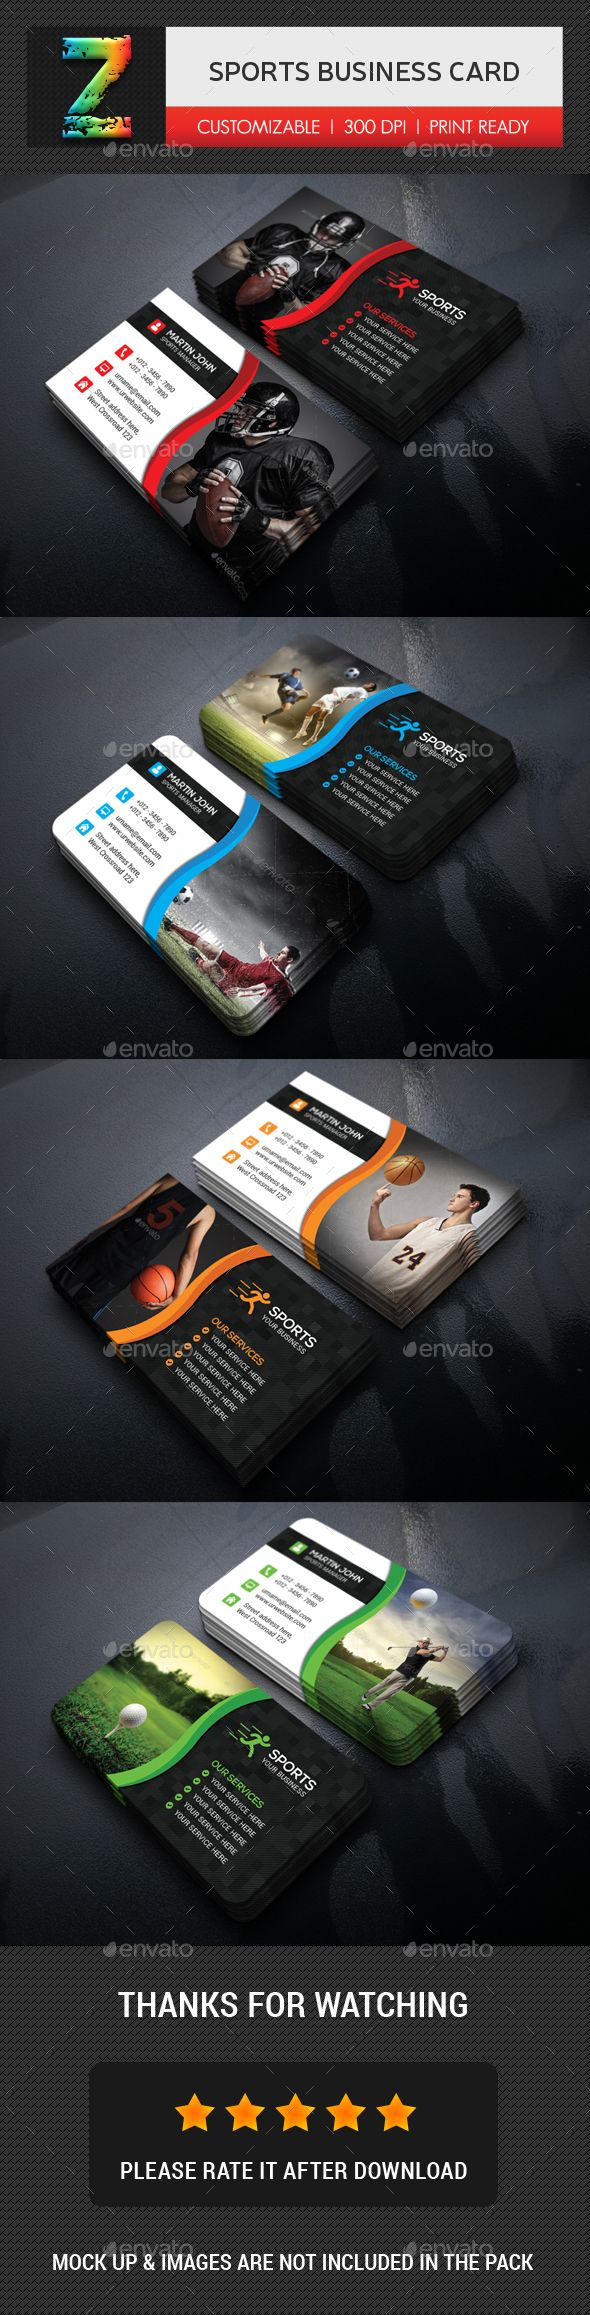 Sports Business Card Business Cards Print Templates Download Here Https Graphicriver Net Ite Business Cards Business Card Template Psd Sports Business